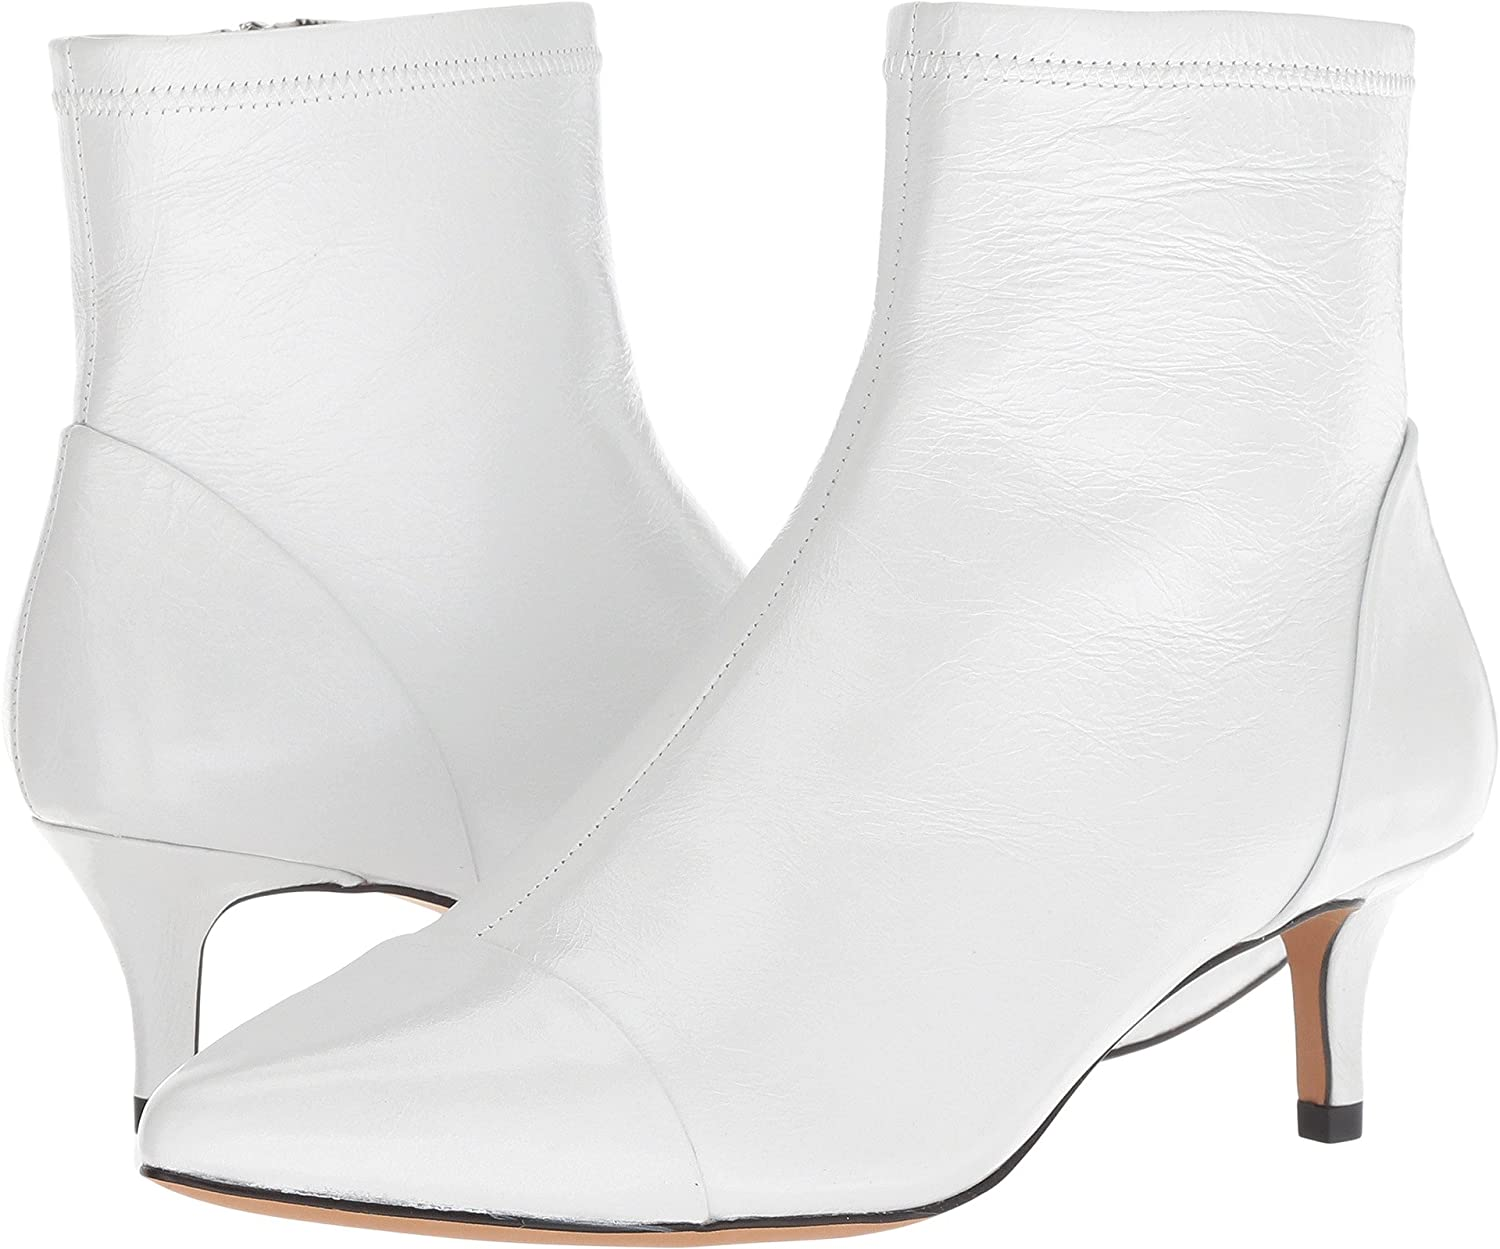 Rebecca Minkoff Womens Siya B07C5223LW 5.5 B(M) US|White Shiny Leather